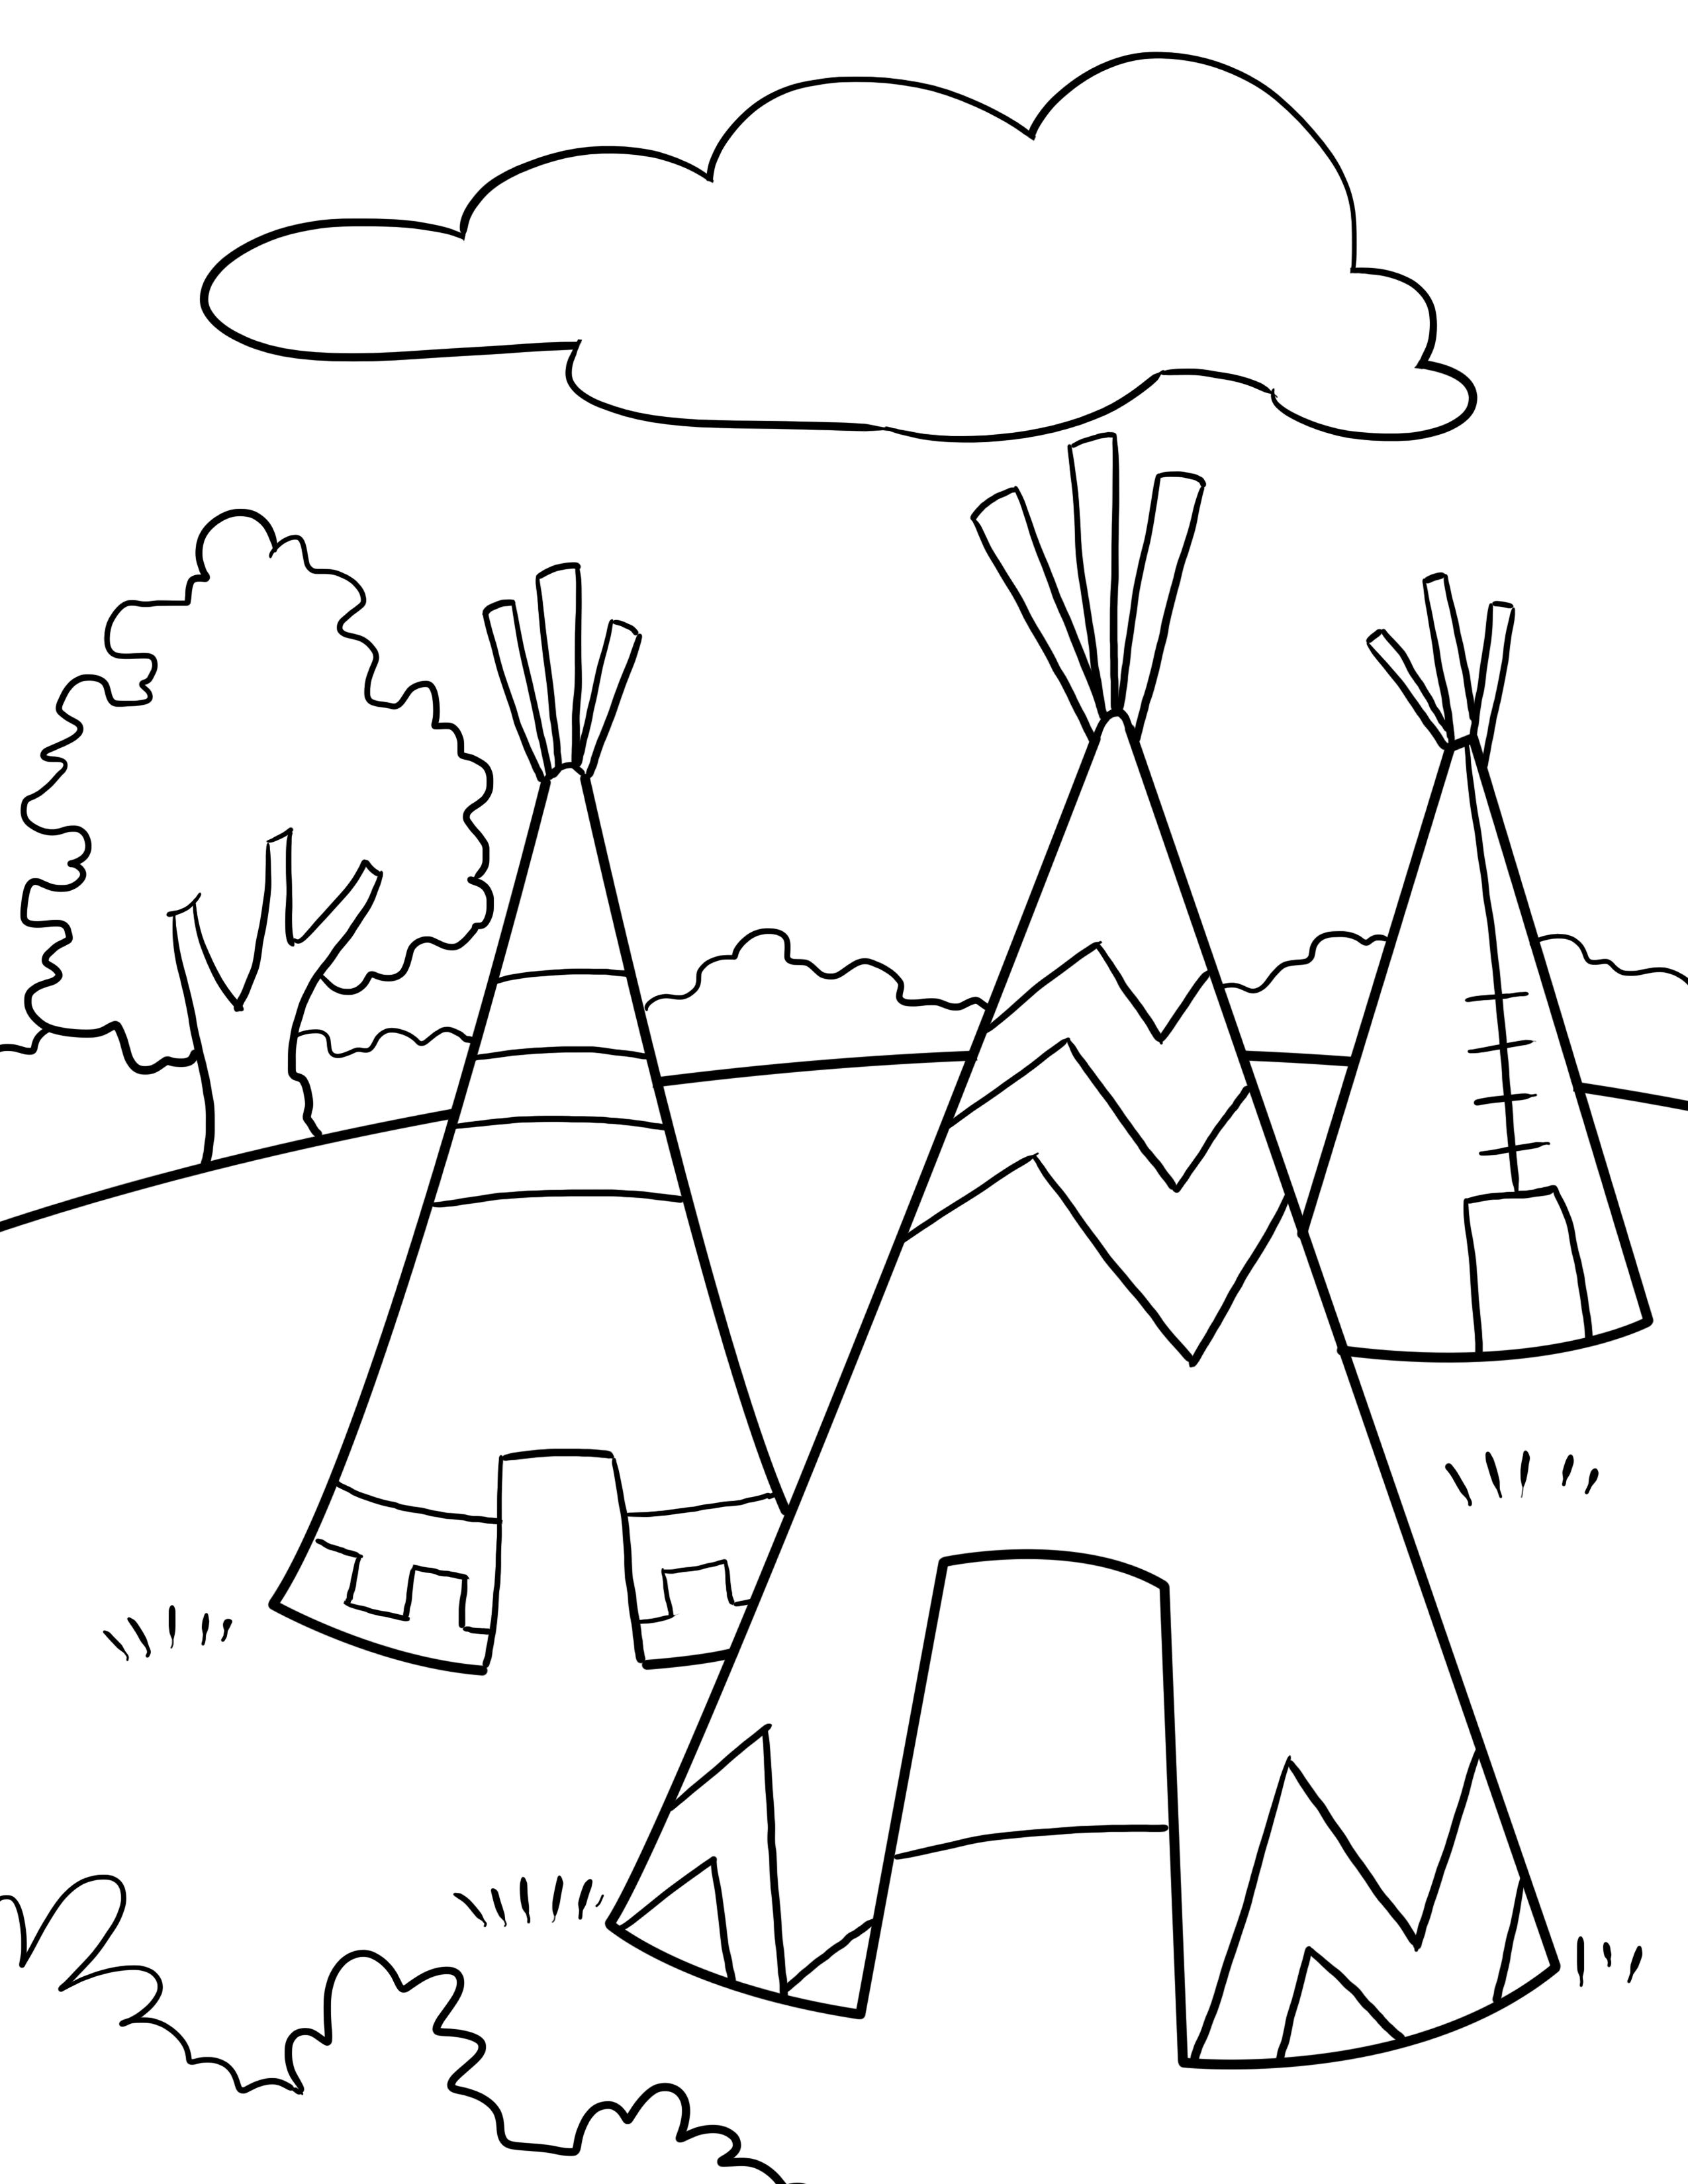 Thanksgiving Coloring Pages PRESCHOOL AND CRAFT IDEAS Pinterest